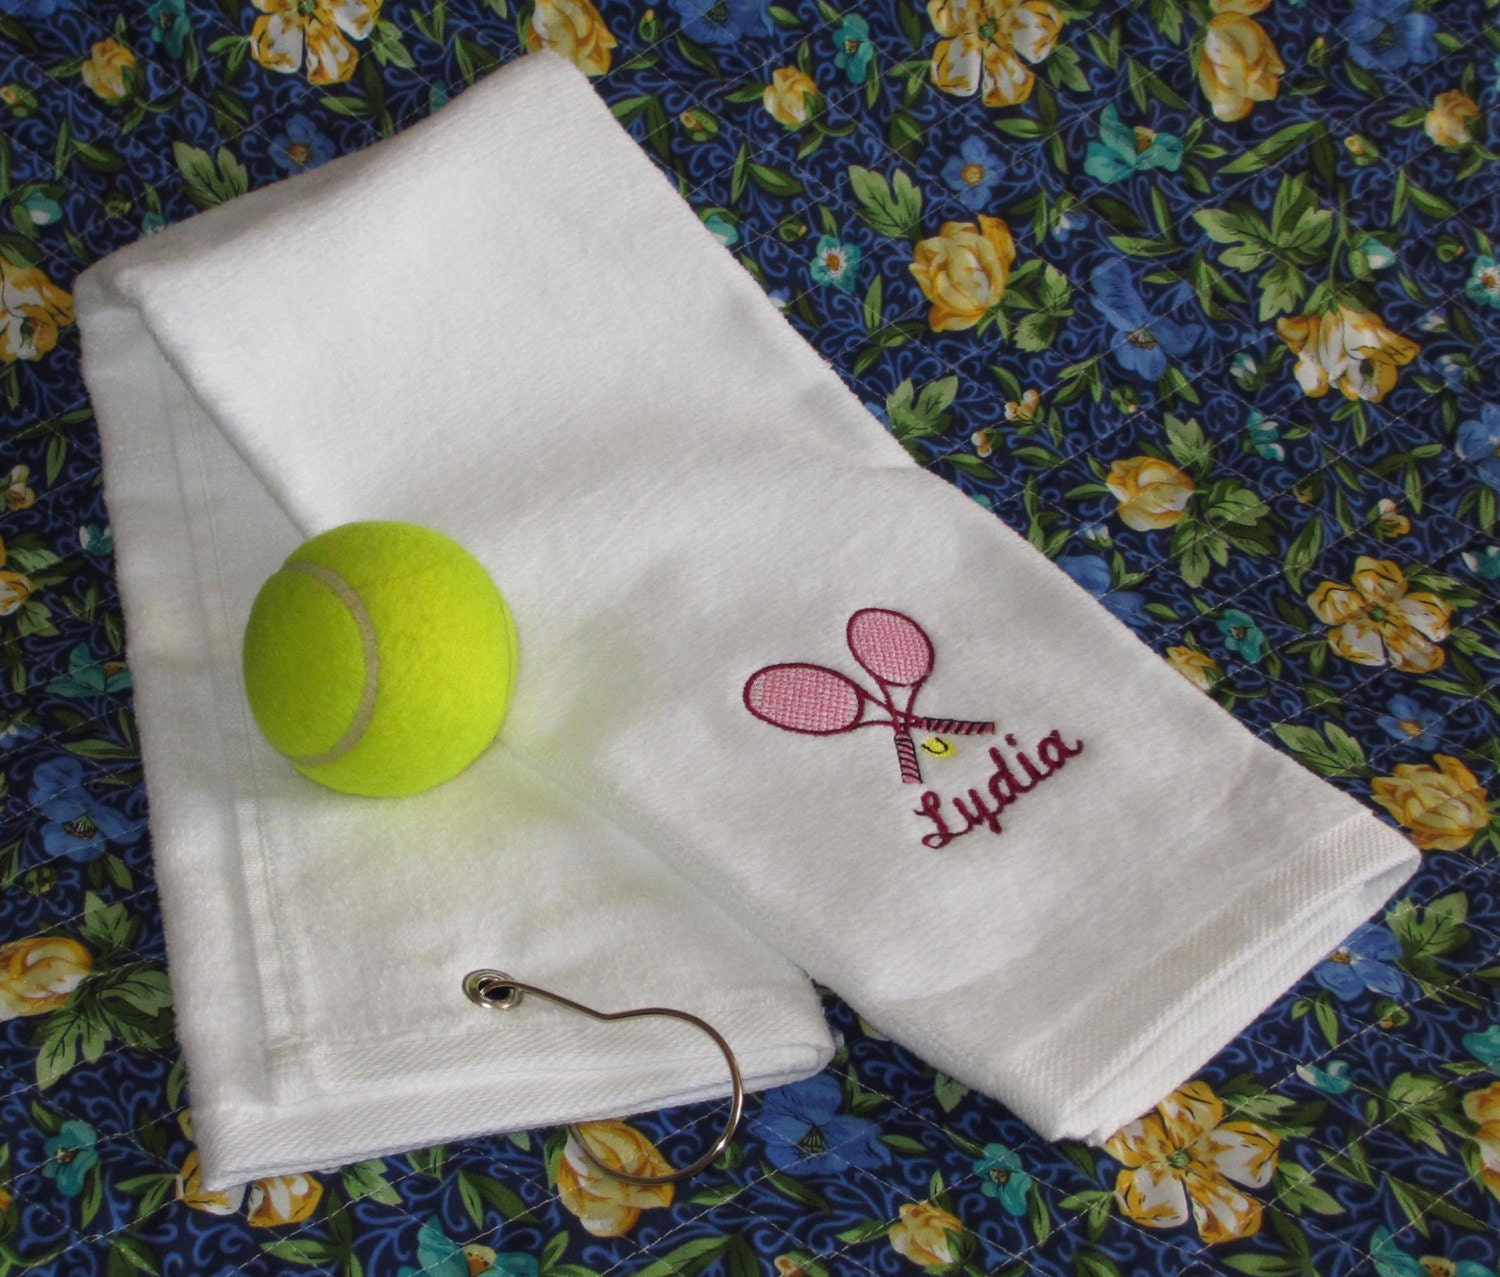 Custom Embroidered Tennis Towel All Cotton Terry